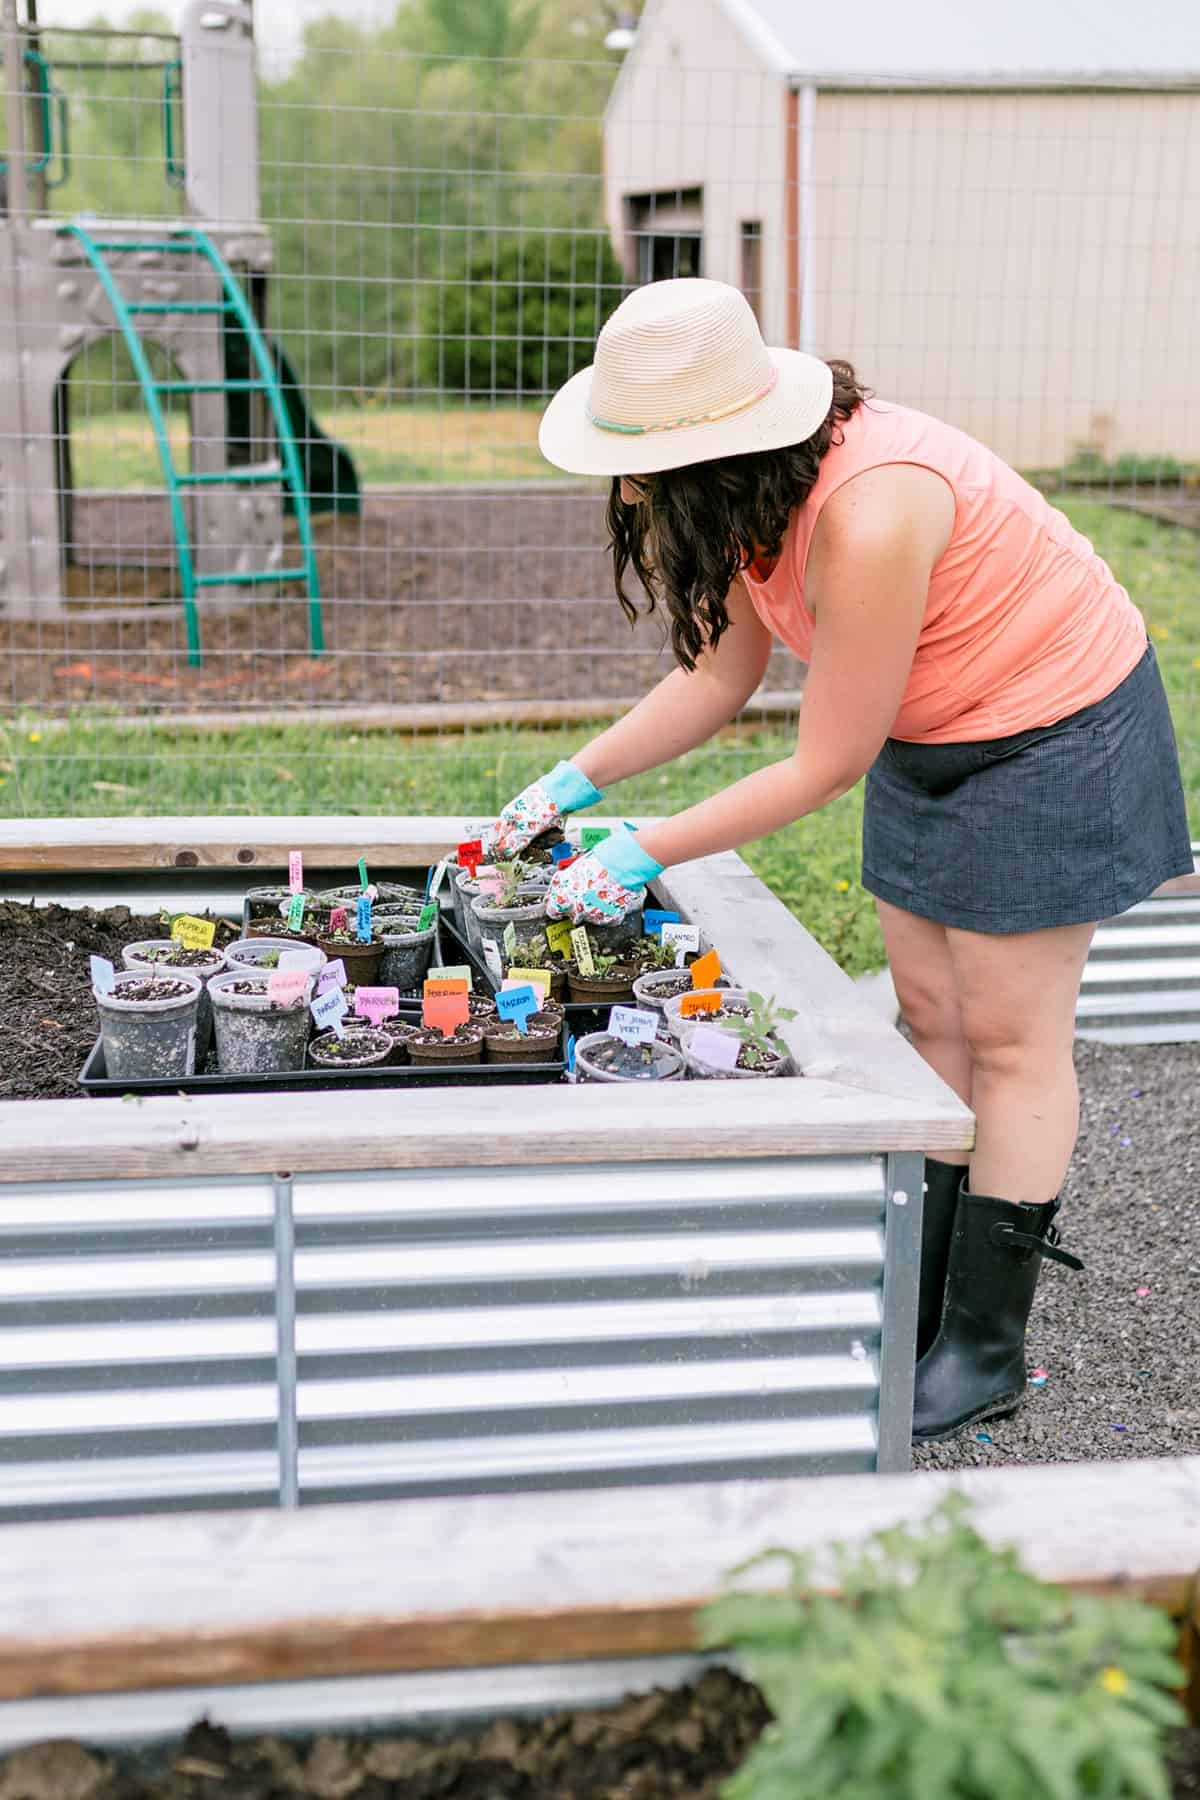 Brunette woman bent over a tray of seedlings set into a raised bed.